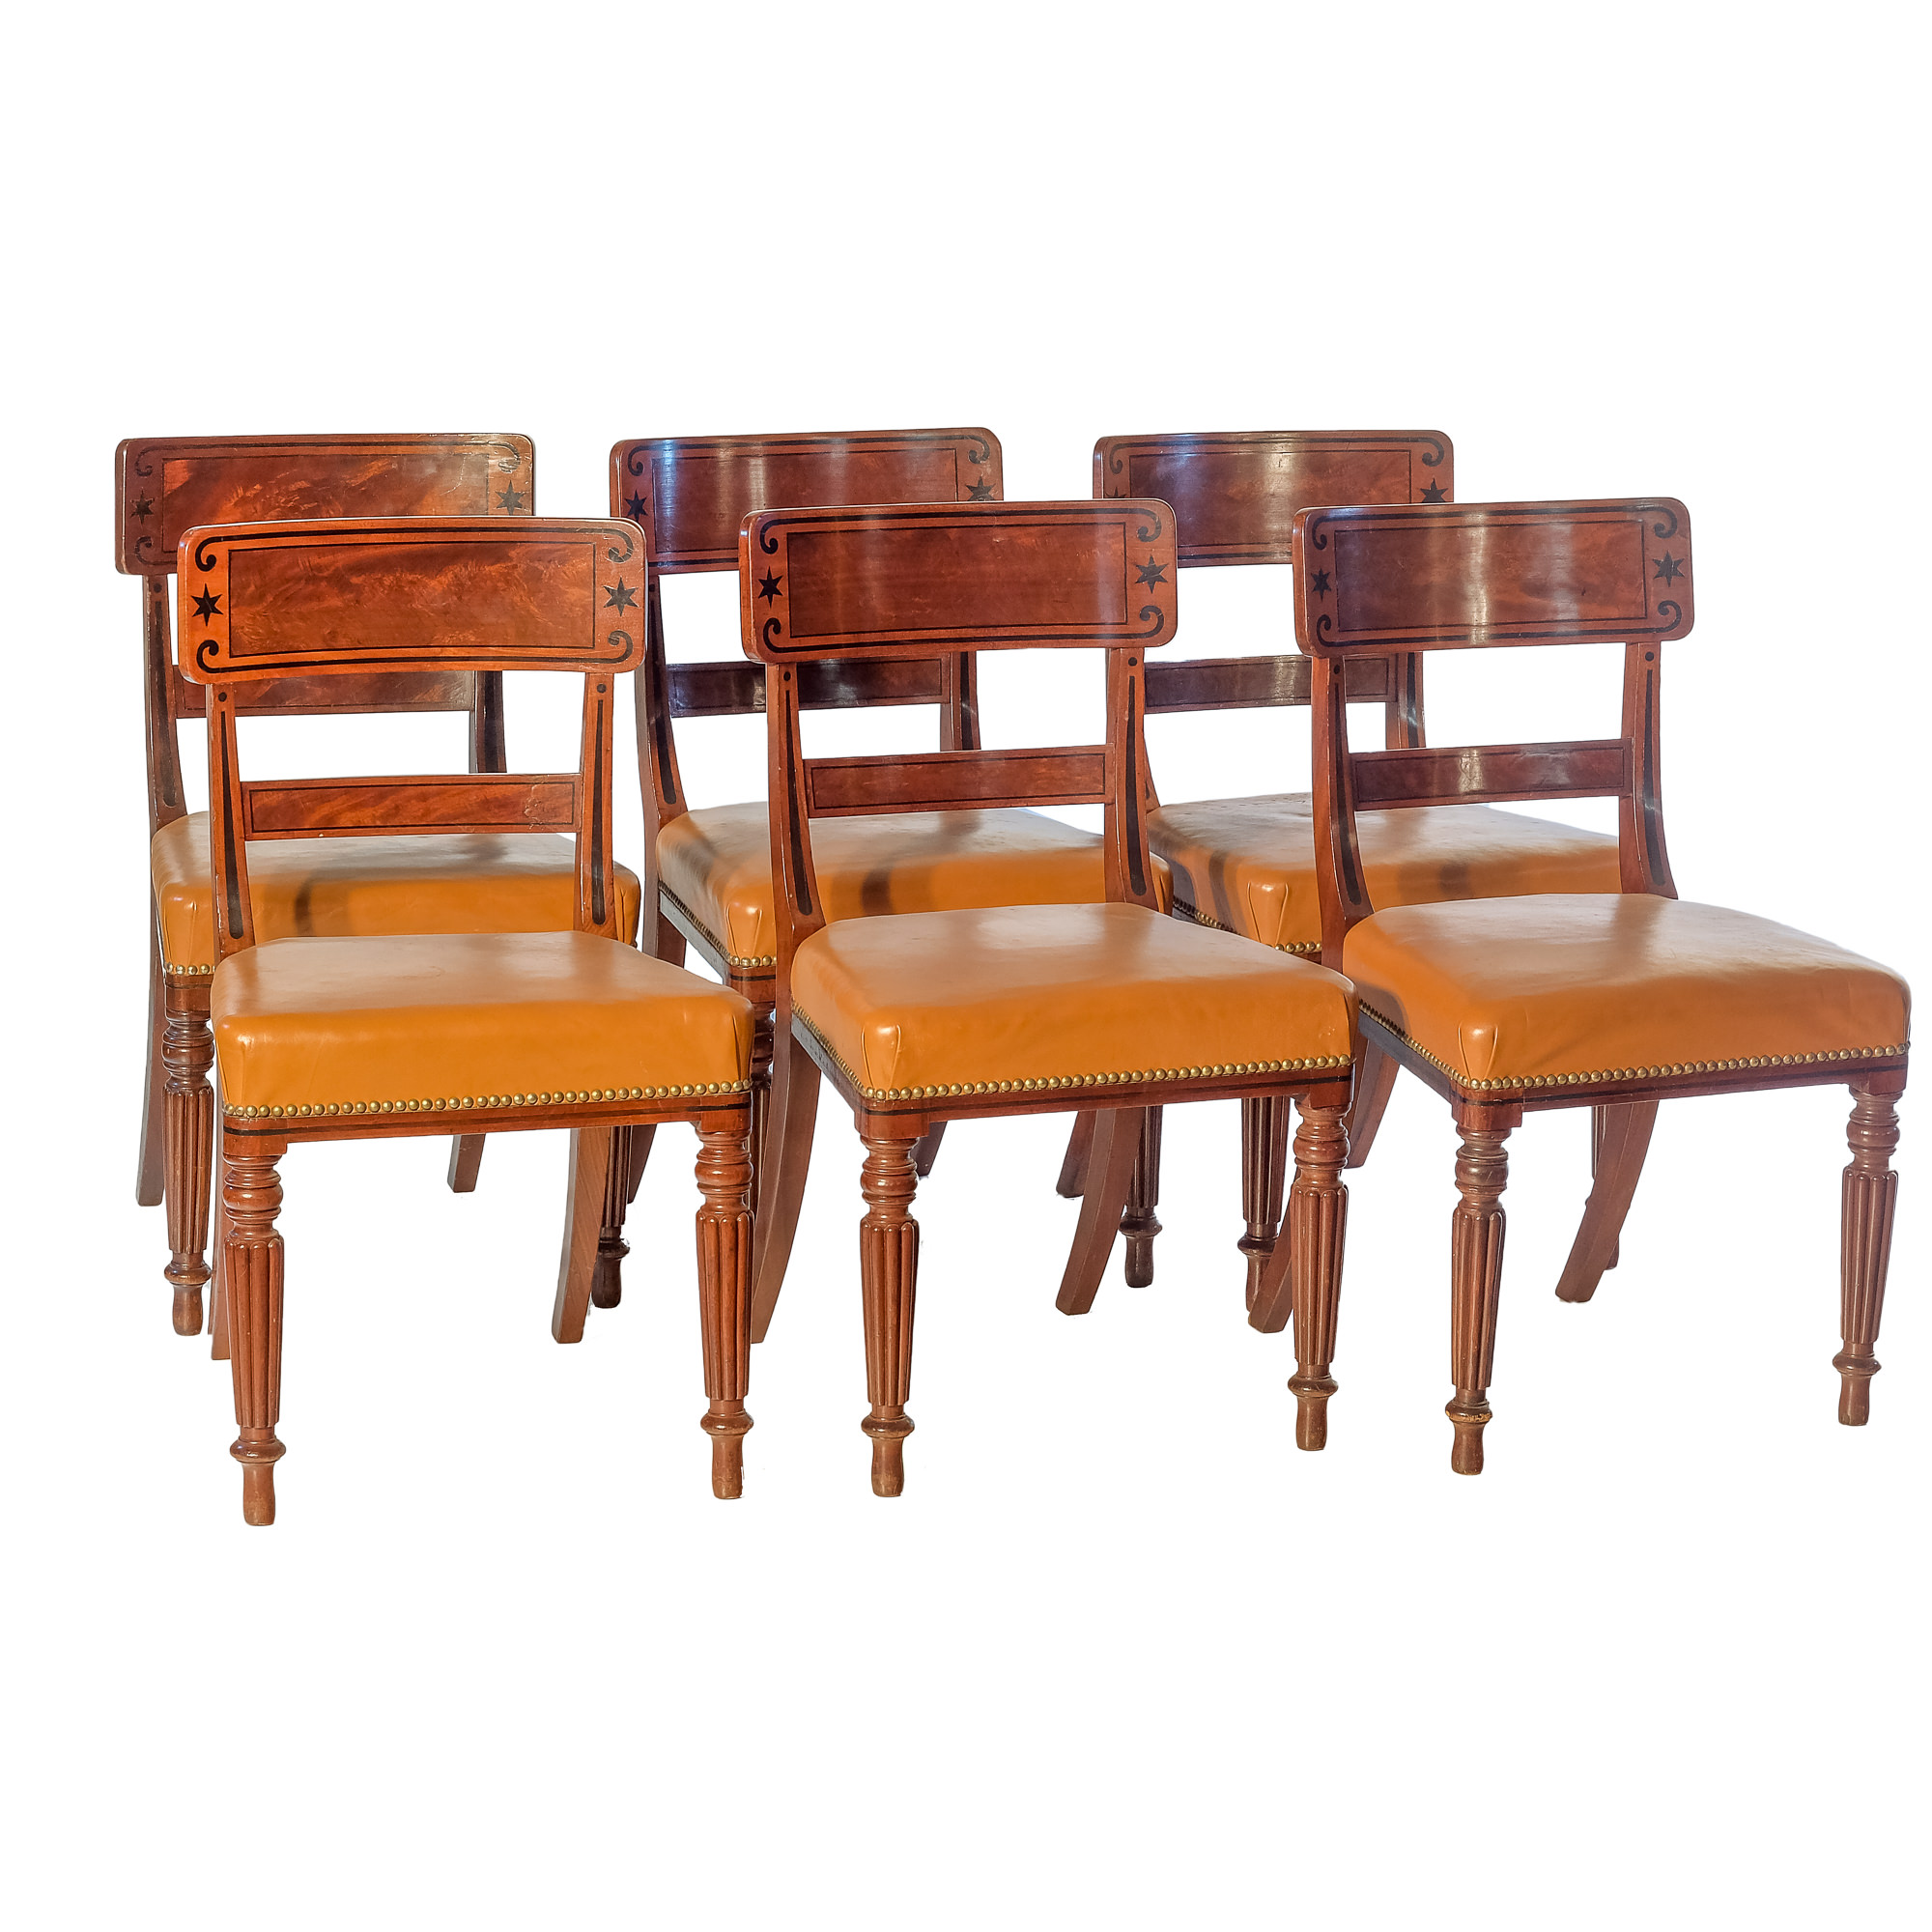 'A Fine Set of Six Regency Period Mahogany and Ebony Inlaid Dining Chairs Circa 1820'